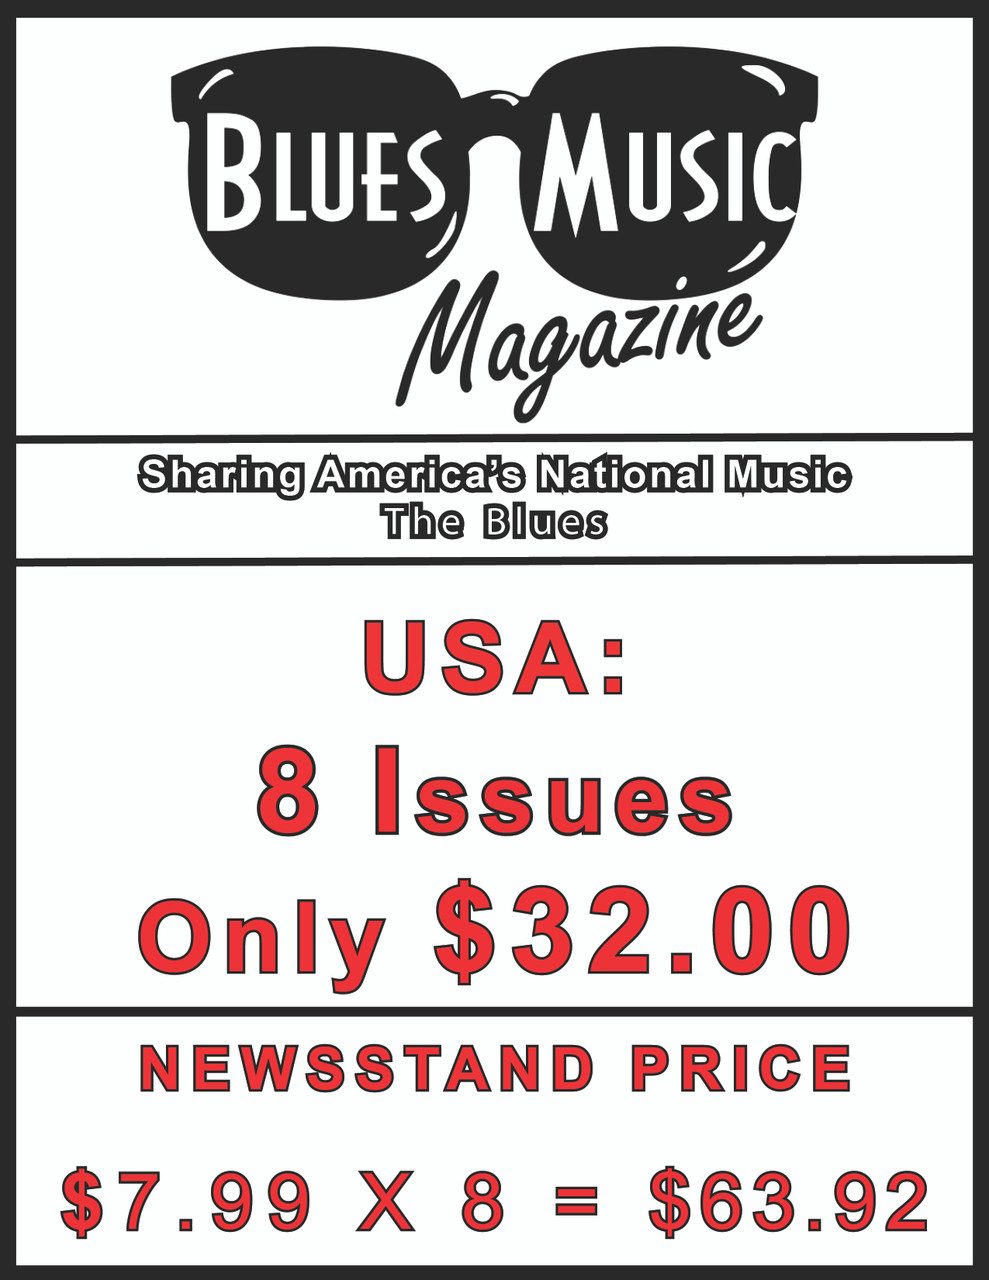 USA SUBSCRIBE OR RENEW FOR 8 ISSUES = 2 YEARS